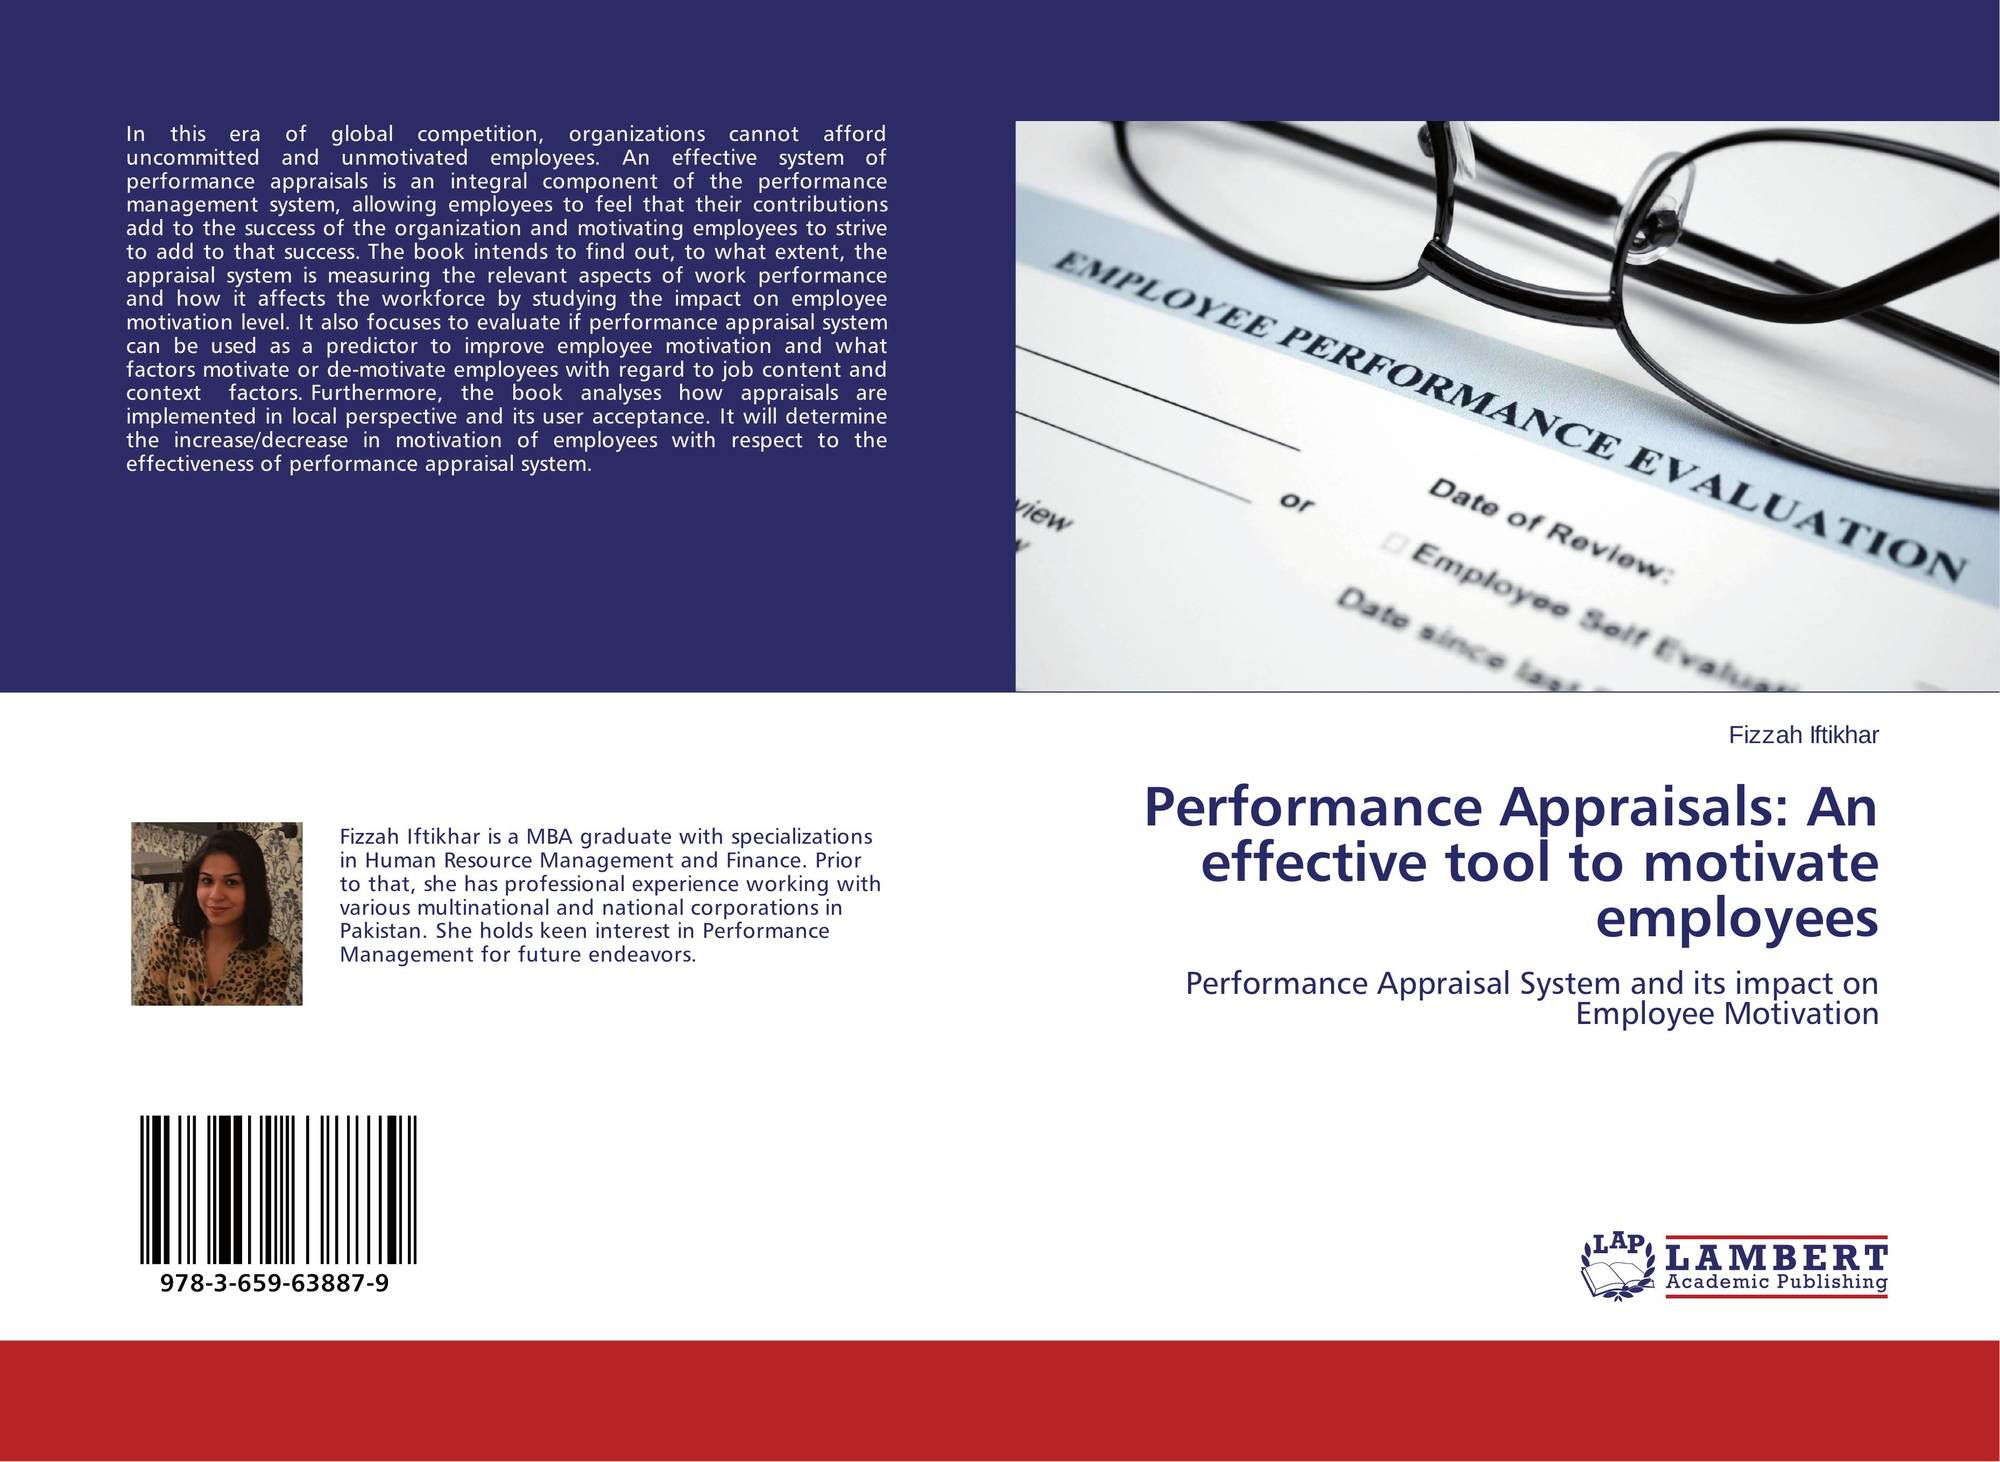 Staff Review Templates       images about ece staff matters on     FC  Performance Appraisal Methods